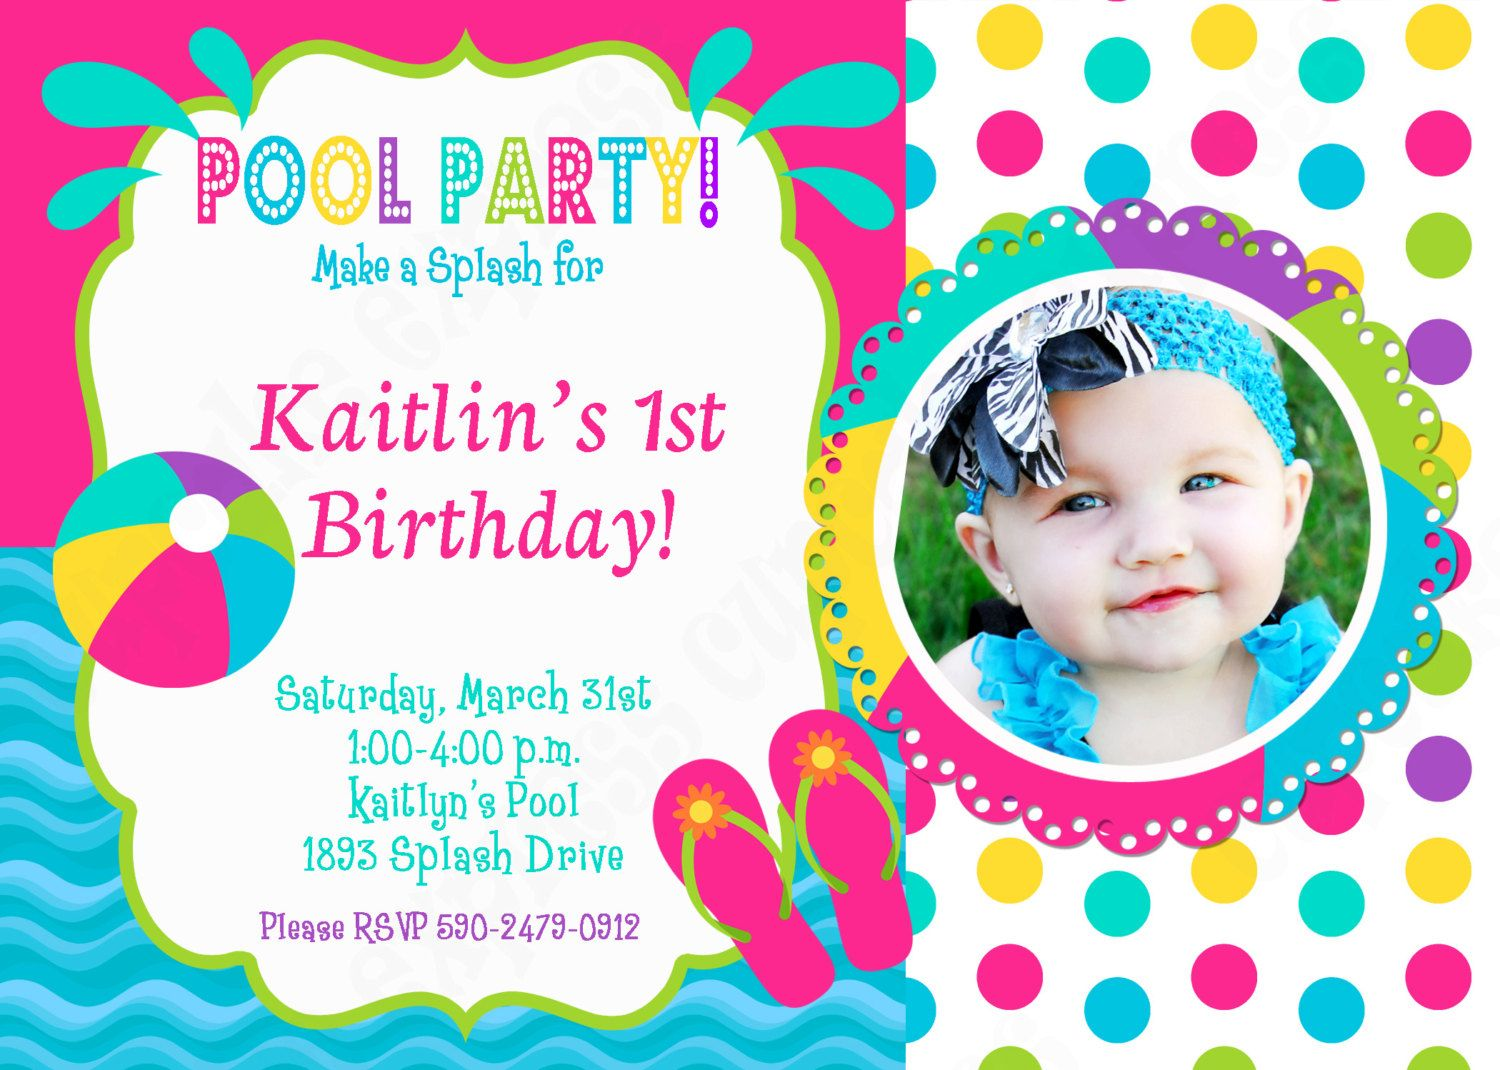 Pool party invitation birthday | Printable Birthday Invitations ...